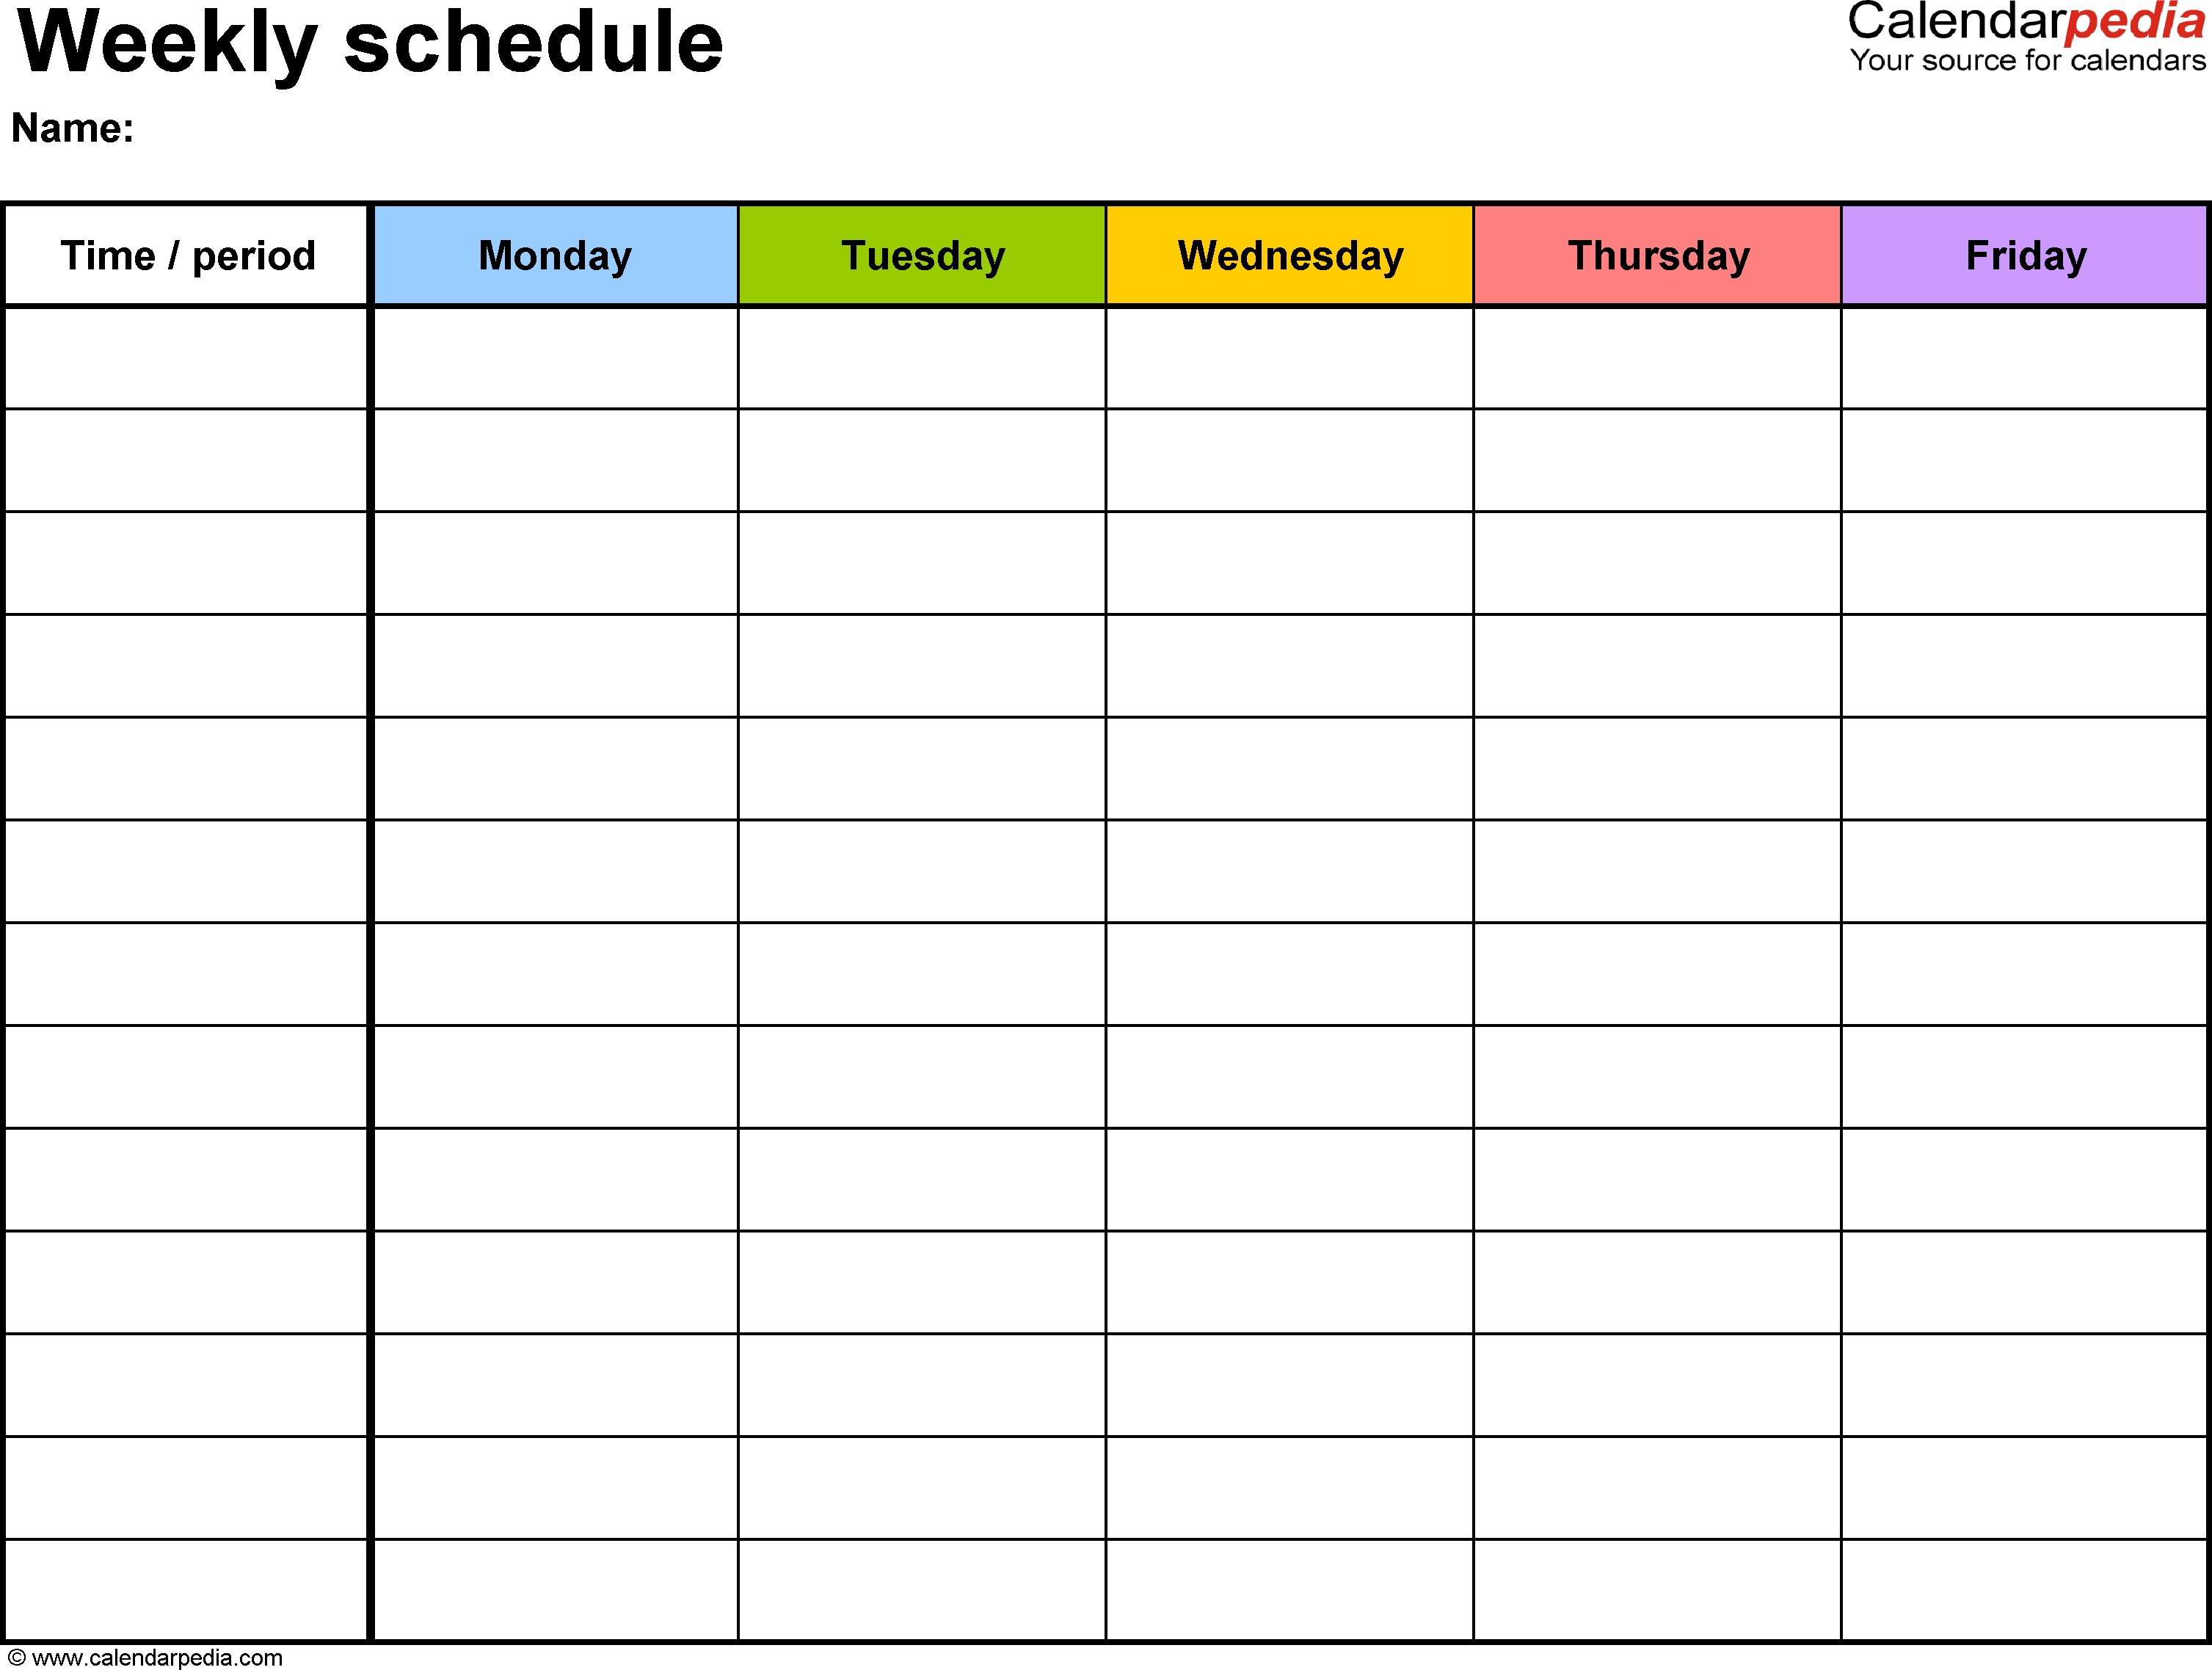 Free Weekly Schedule Templates For Excel - 18 Templates pertaining to Calendar By Day With Printable